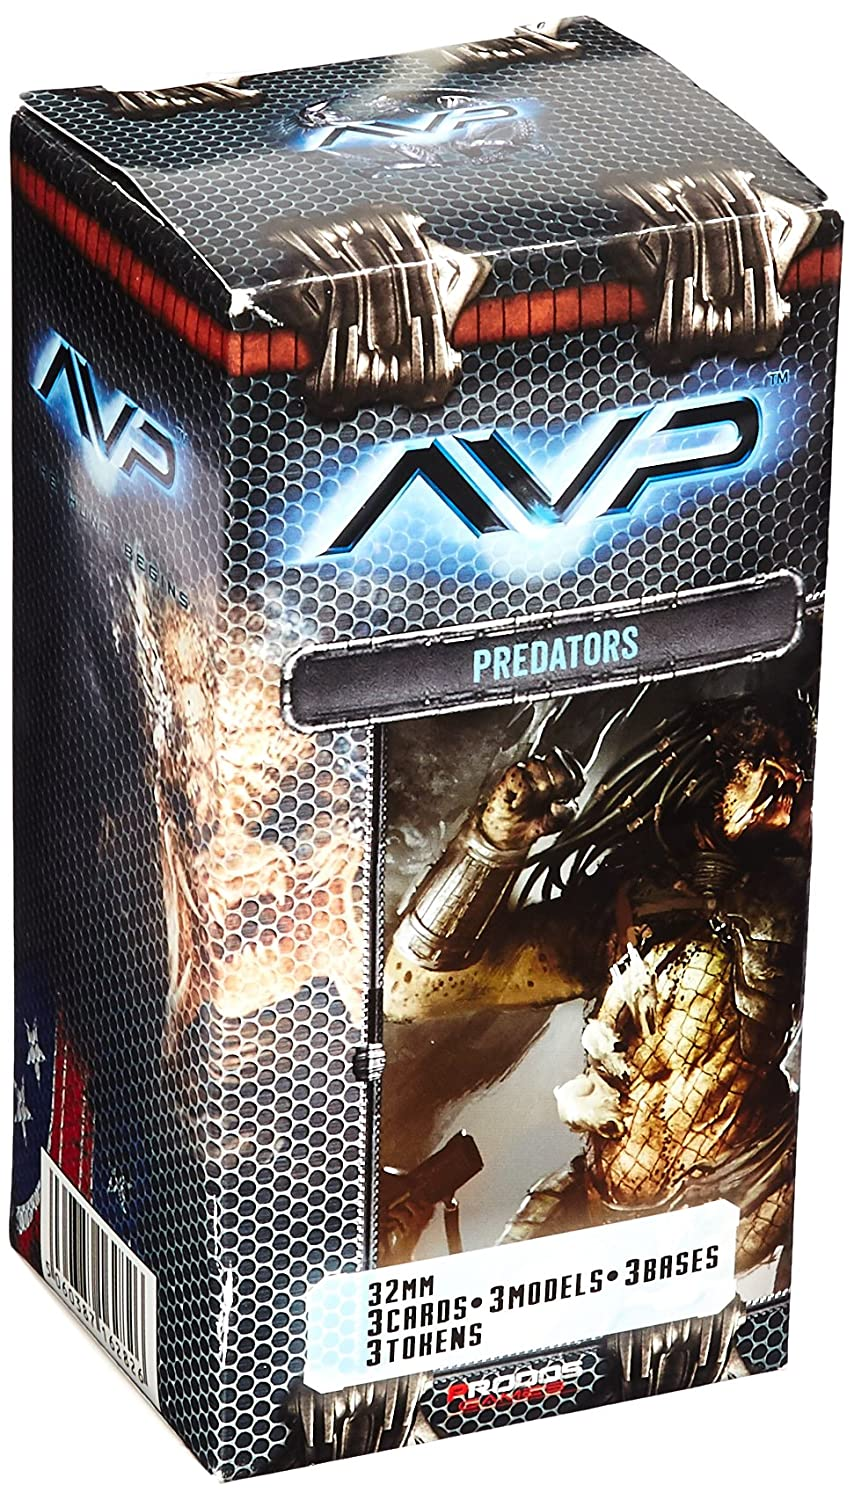 Ninja Division AvP Predators x3 Board Game